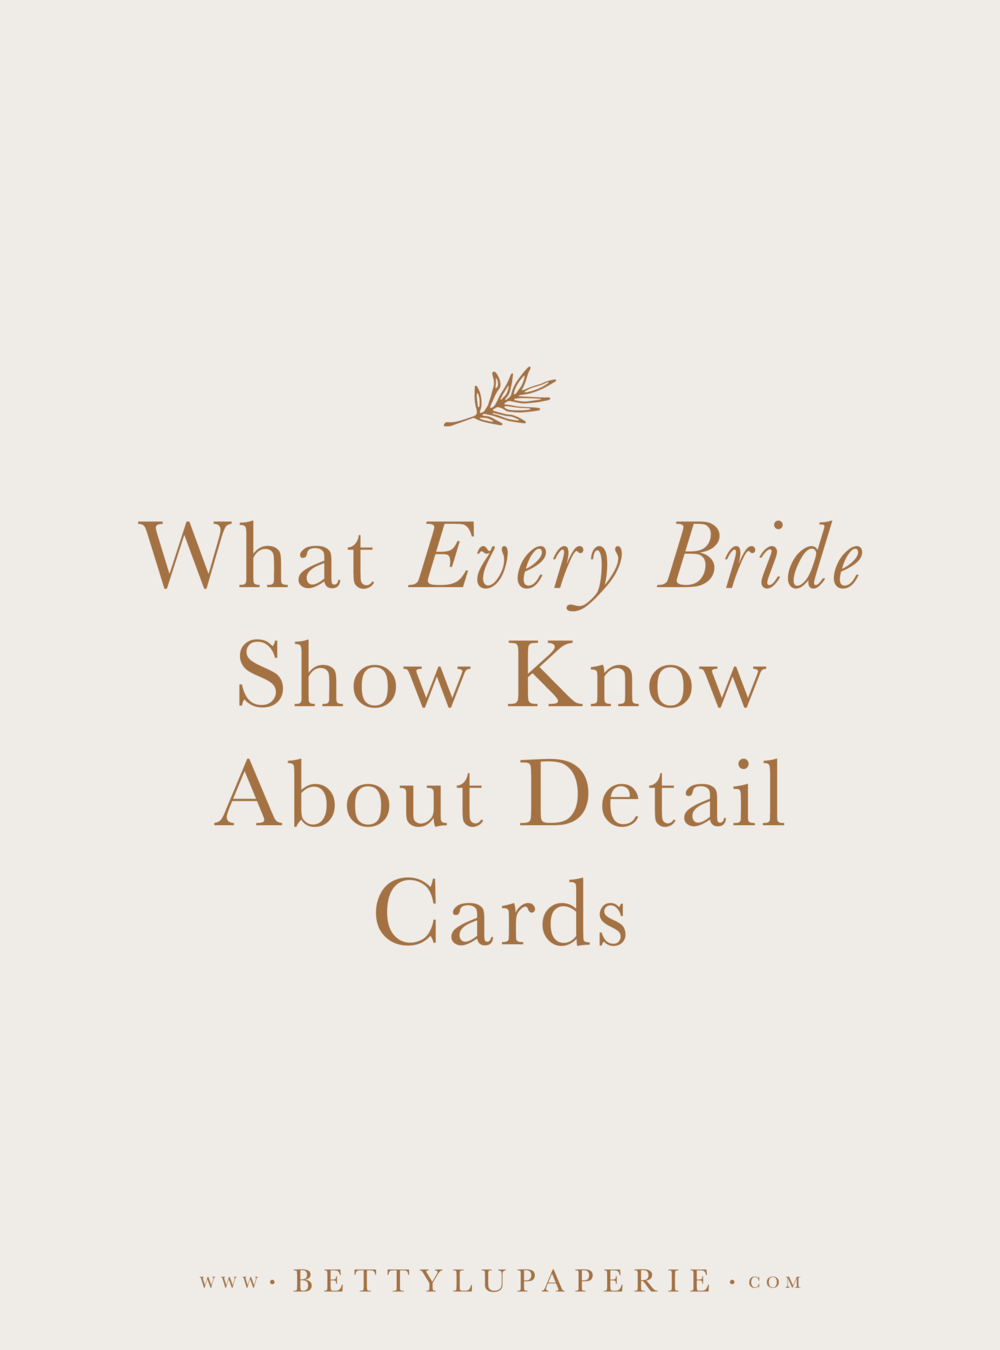 Wedding Details Card Wording.png